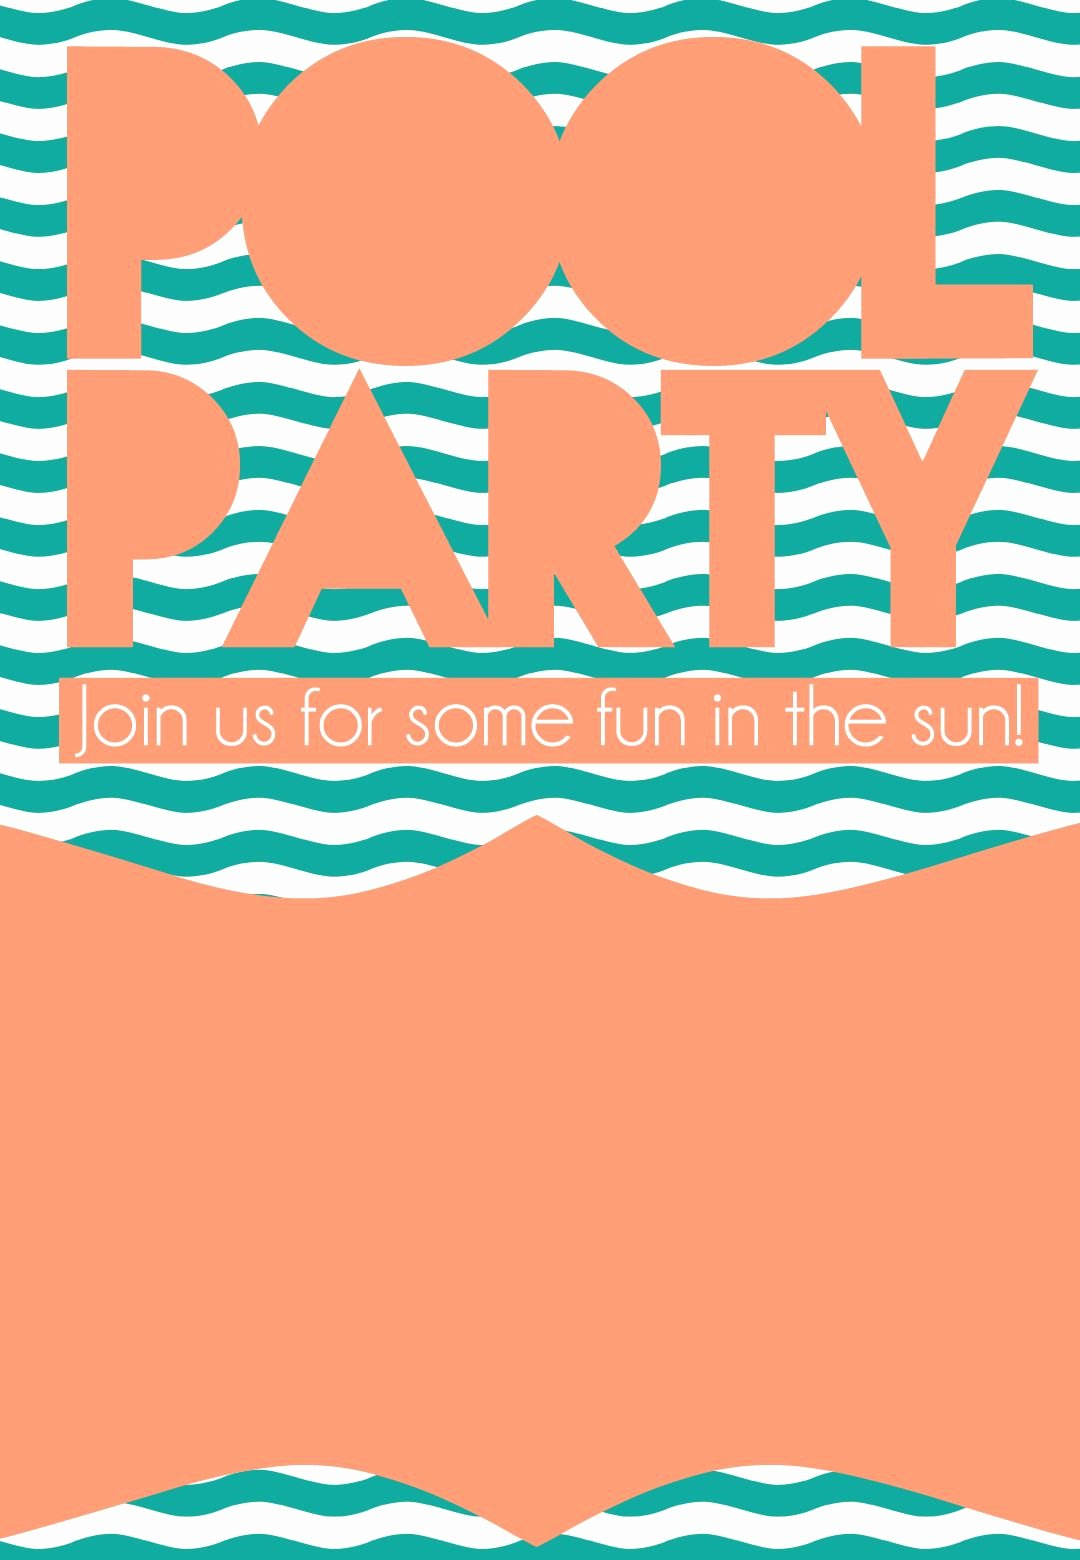 Pool Party Invitation Template Best Of Summer Pool Party Invitation Free Printable Diy